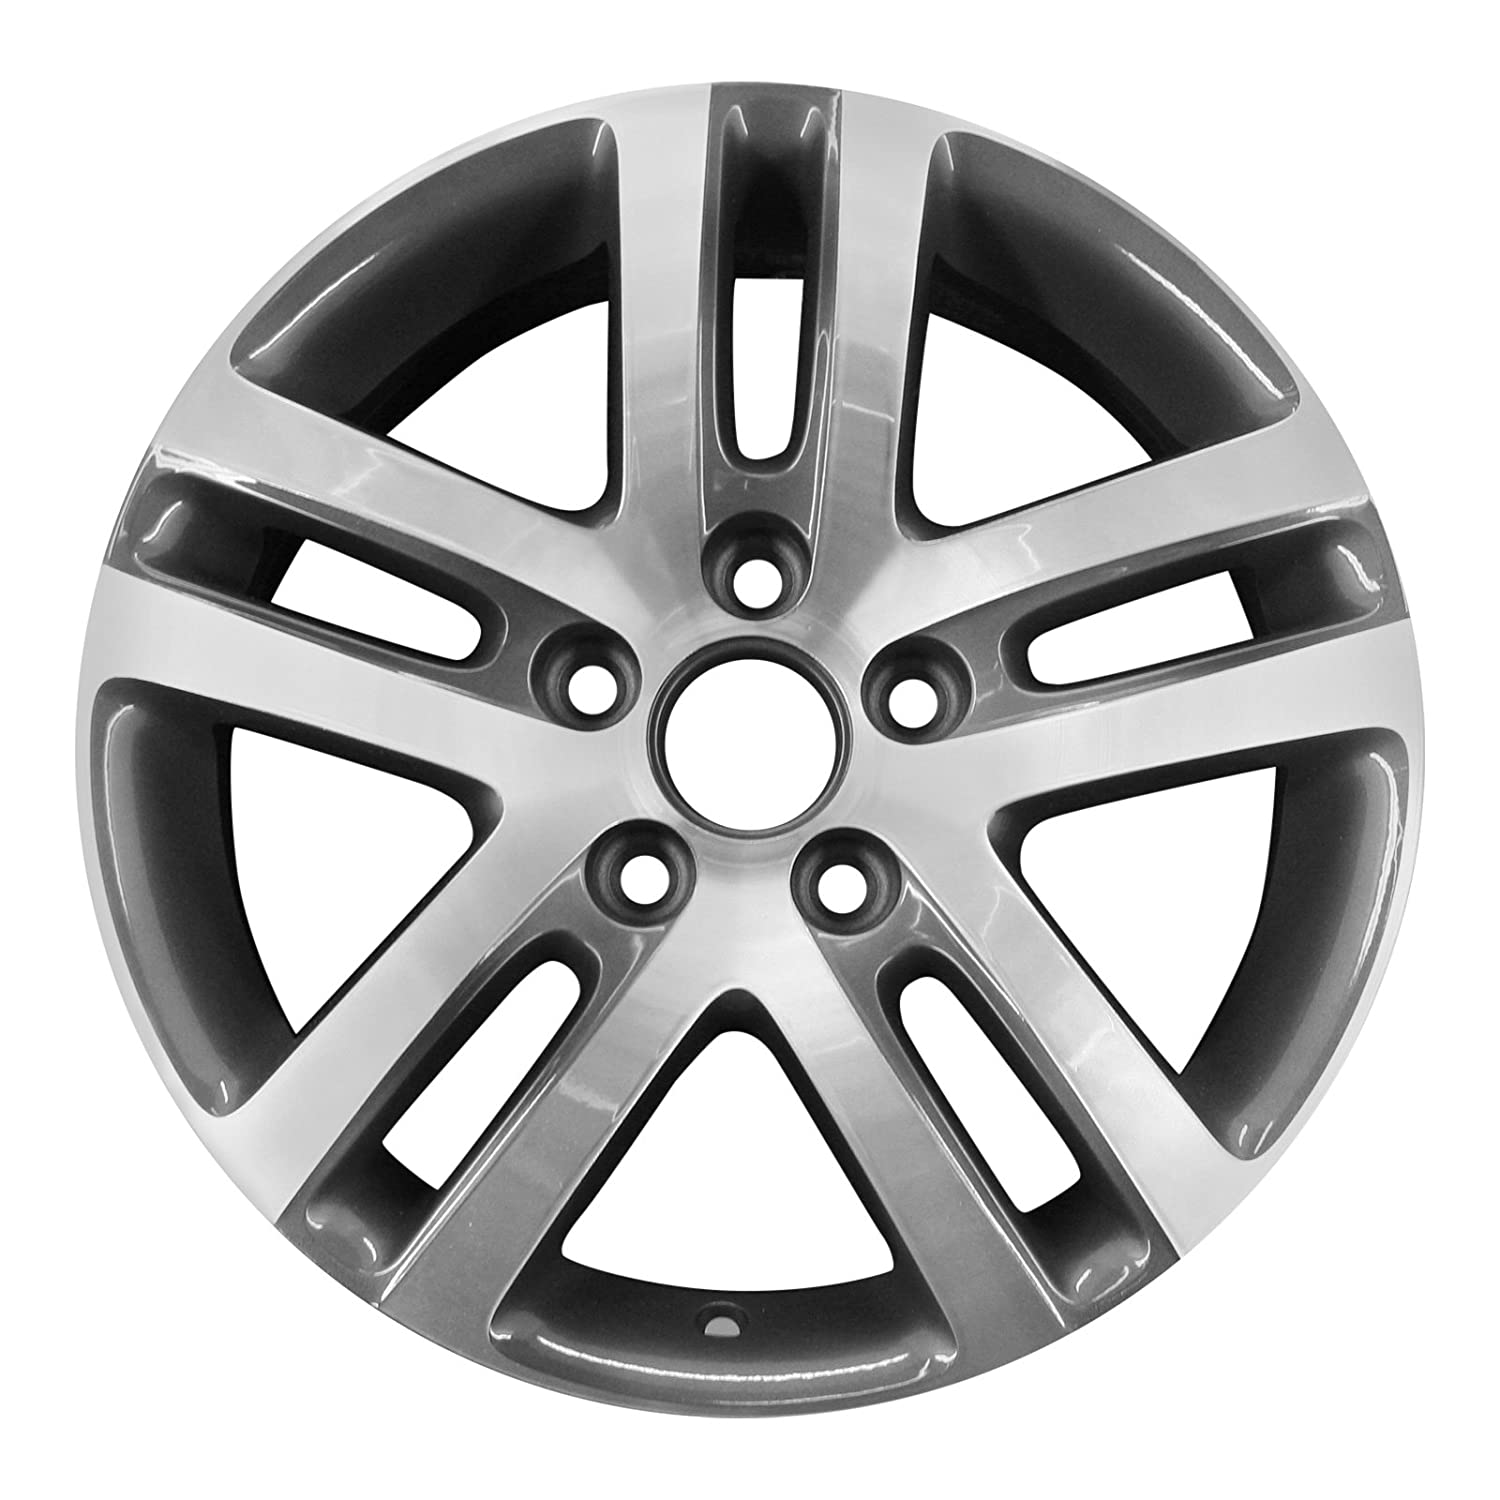 amazon 16 replacement rim for volkswagen jetta 2005 2016 wheel 2017 VW Jetta White Silver amazon 16 replacement rim for volkswagen jetta 2005 2016 wheel 69812 automotive